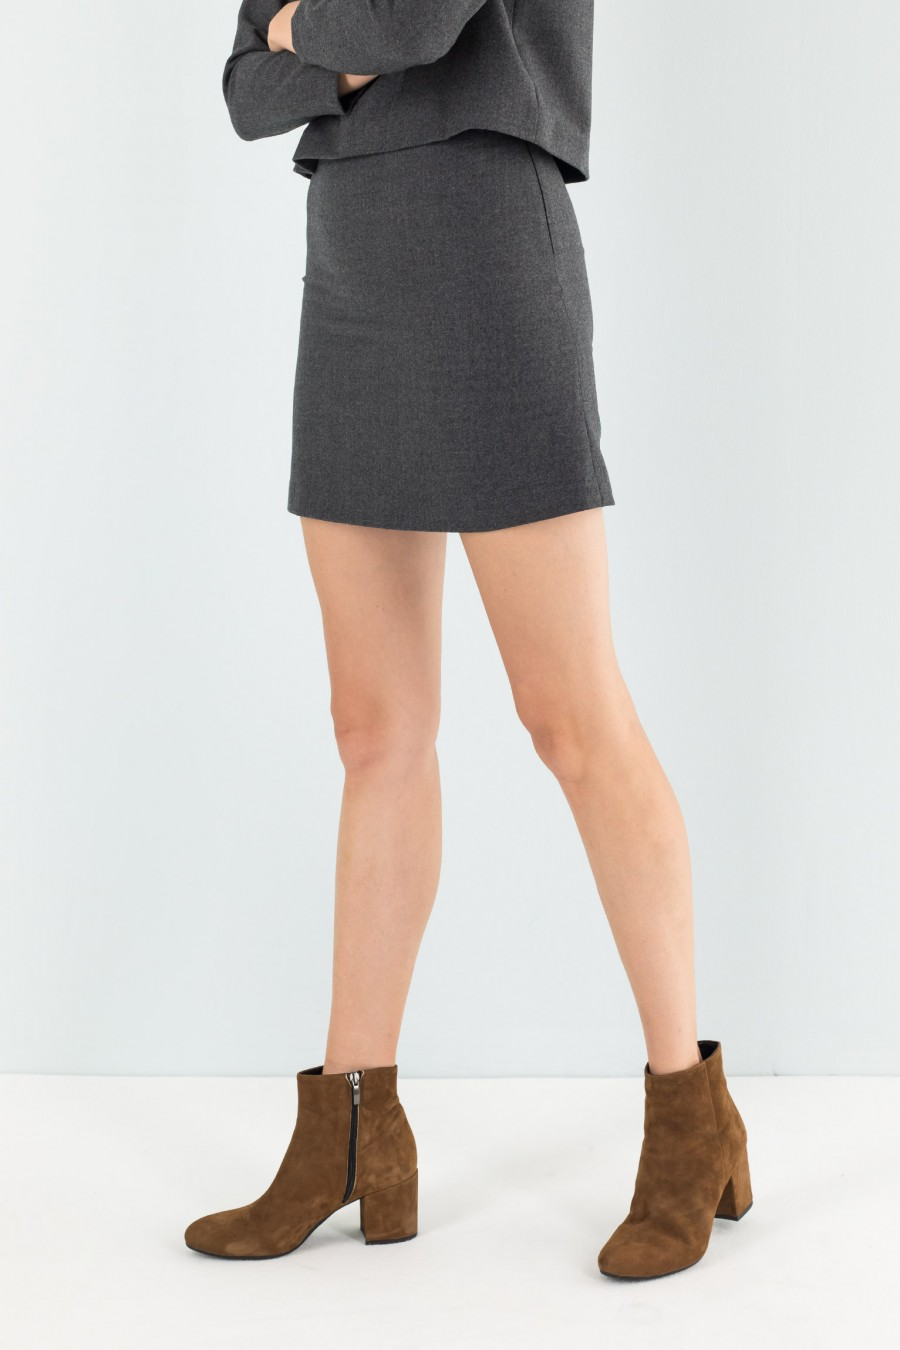 Lazzari grey mini skirt